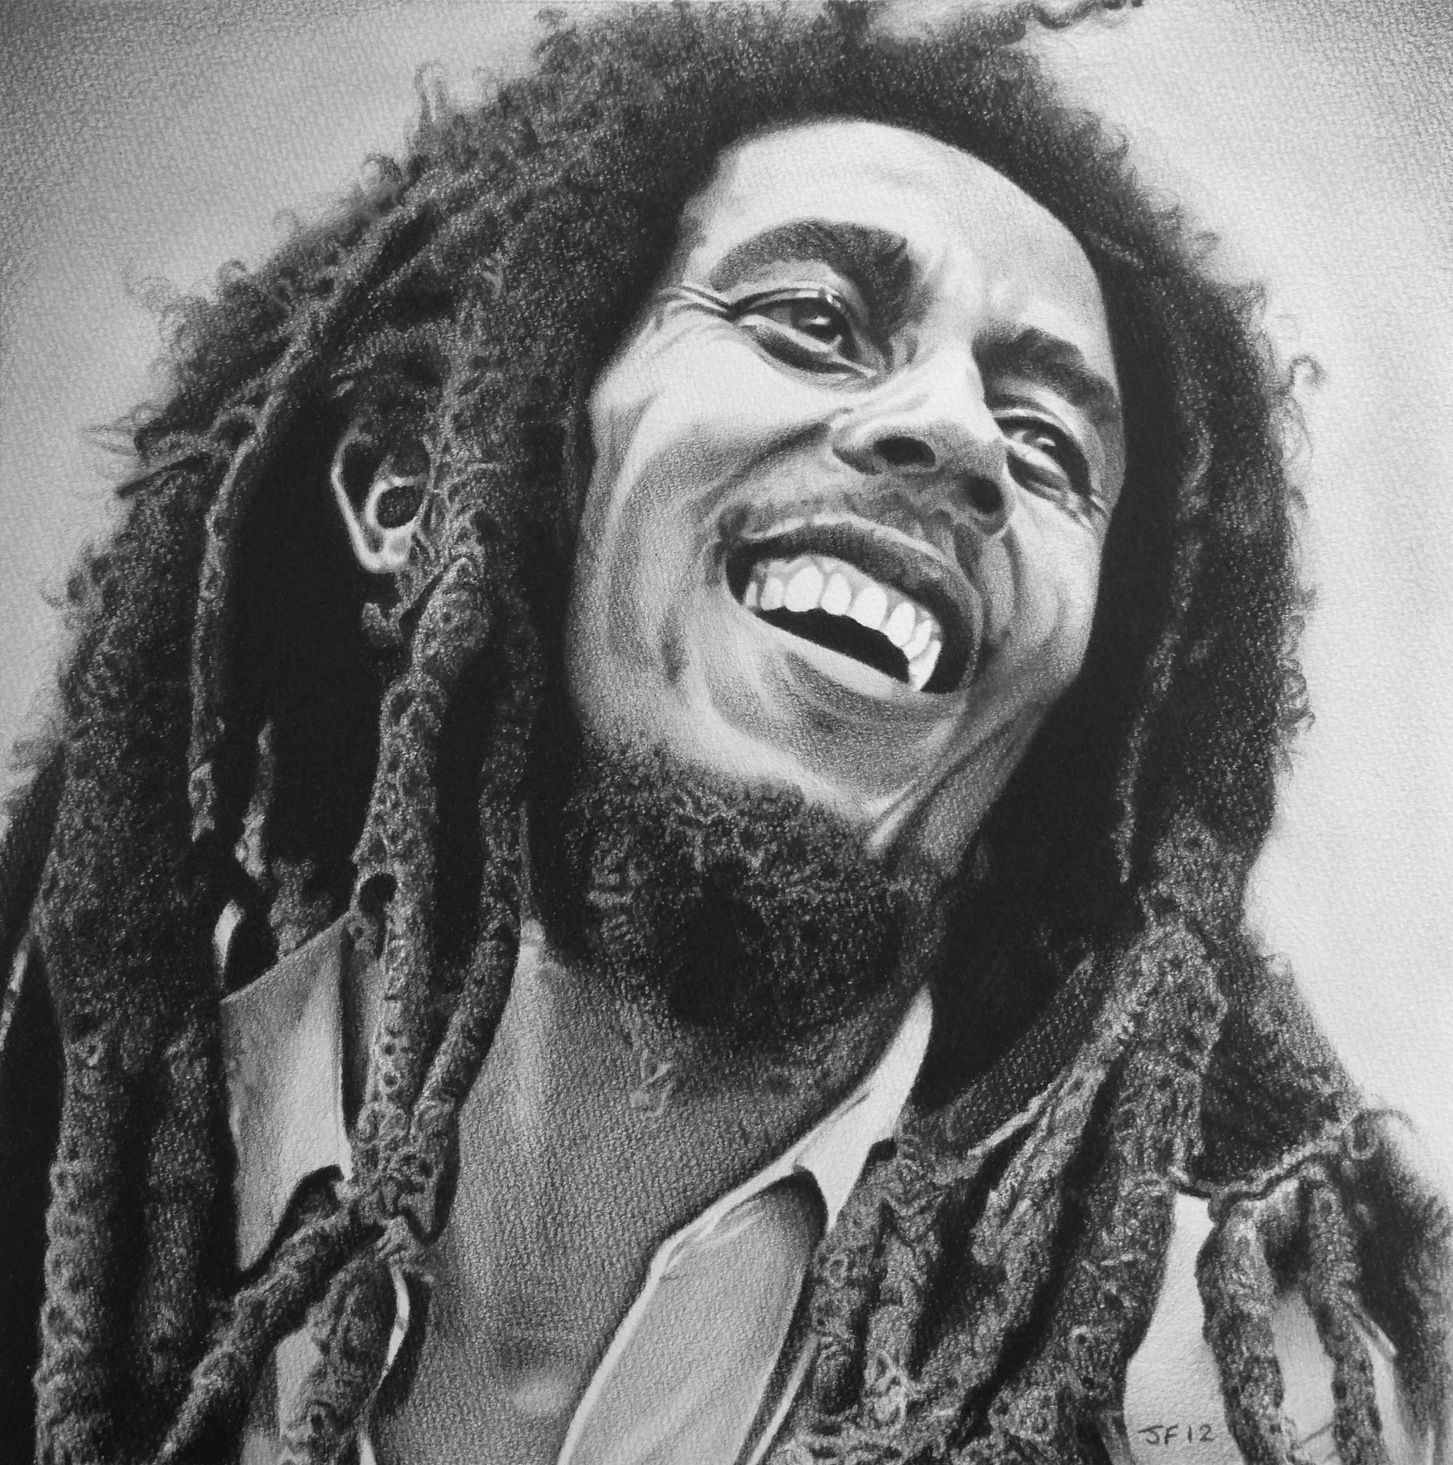 Pin by andrea corley on music pinterest bob marley bobs and bob altavistaventures Gallery